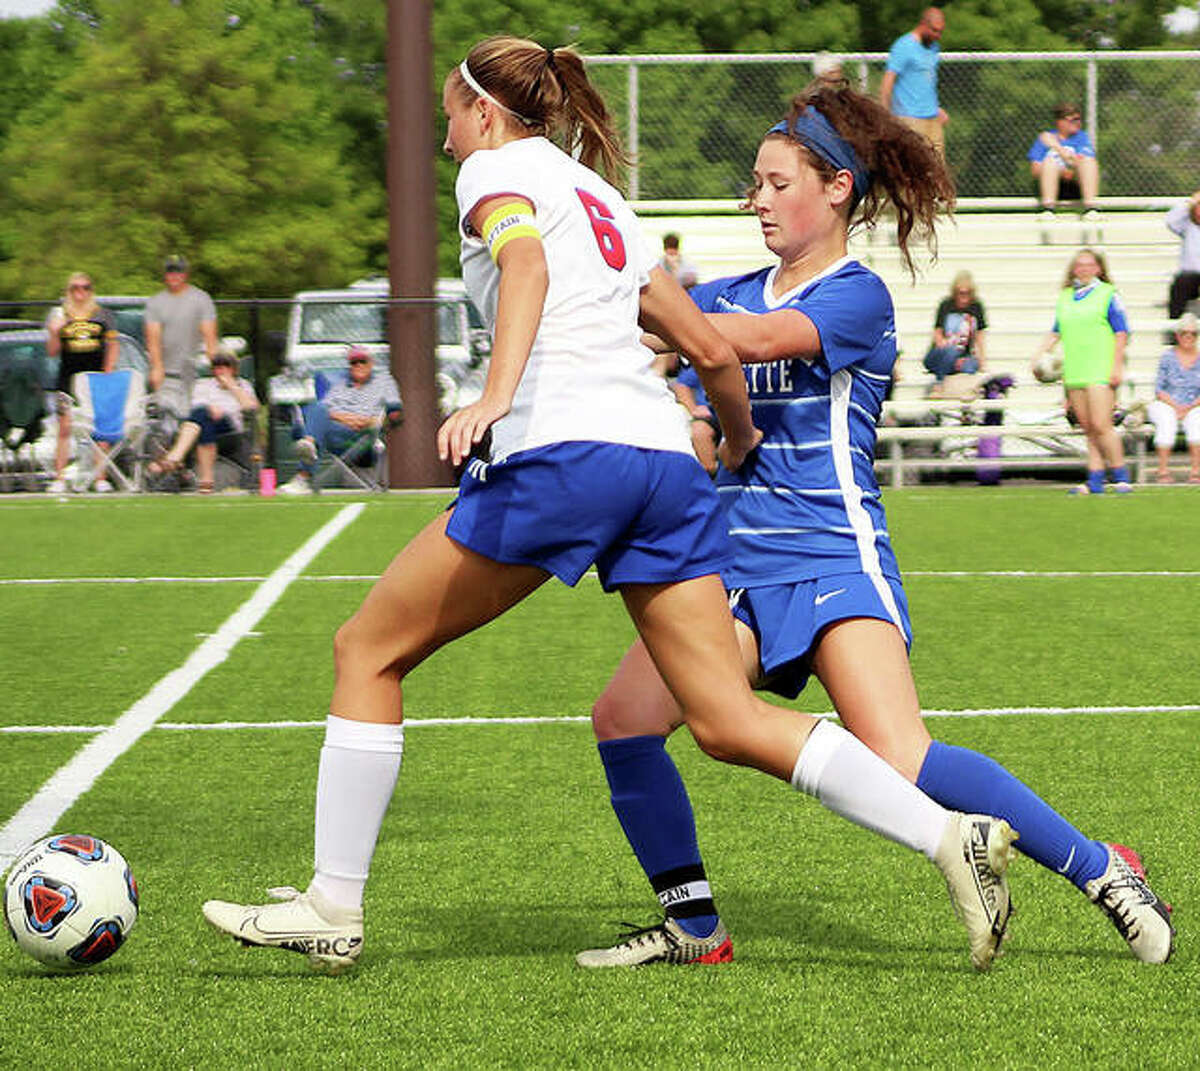 Macie Lucas of Roxana (6) tries to get around Marquette's Madelyn Smith Friday during a May 21 game at Gordon Moore Park. The teams will play a rematch Friday for a Class 1A sectional championship at 4:30 at the Wood River Soccer Park.